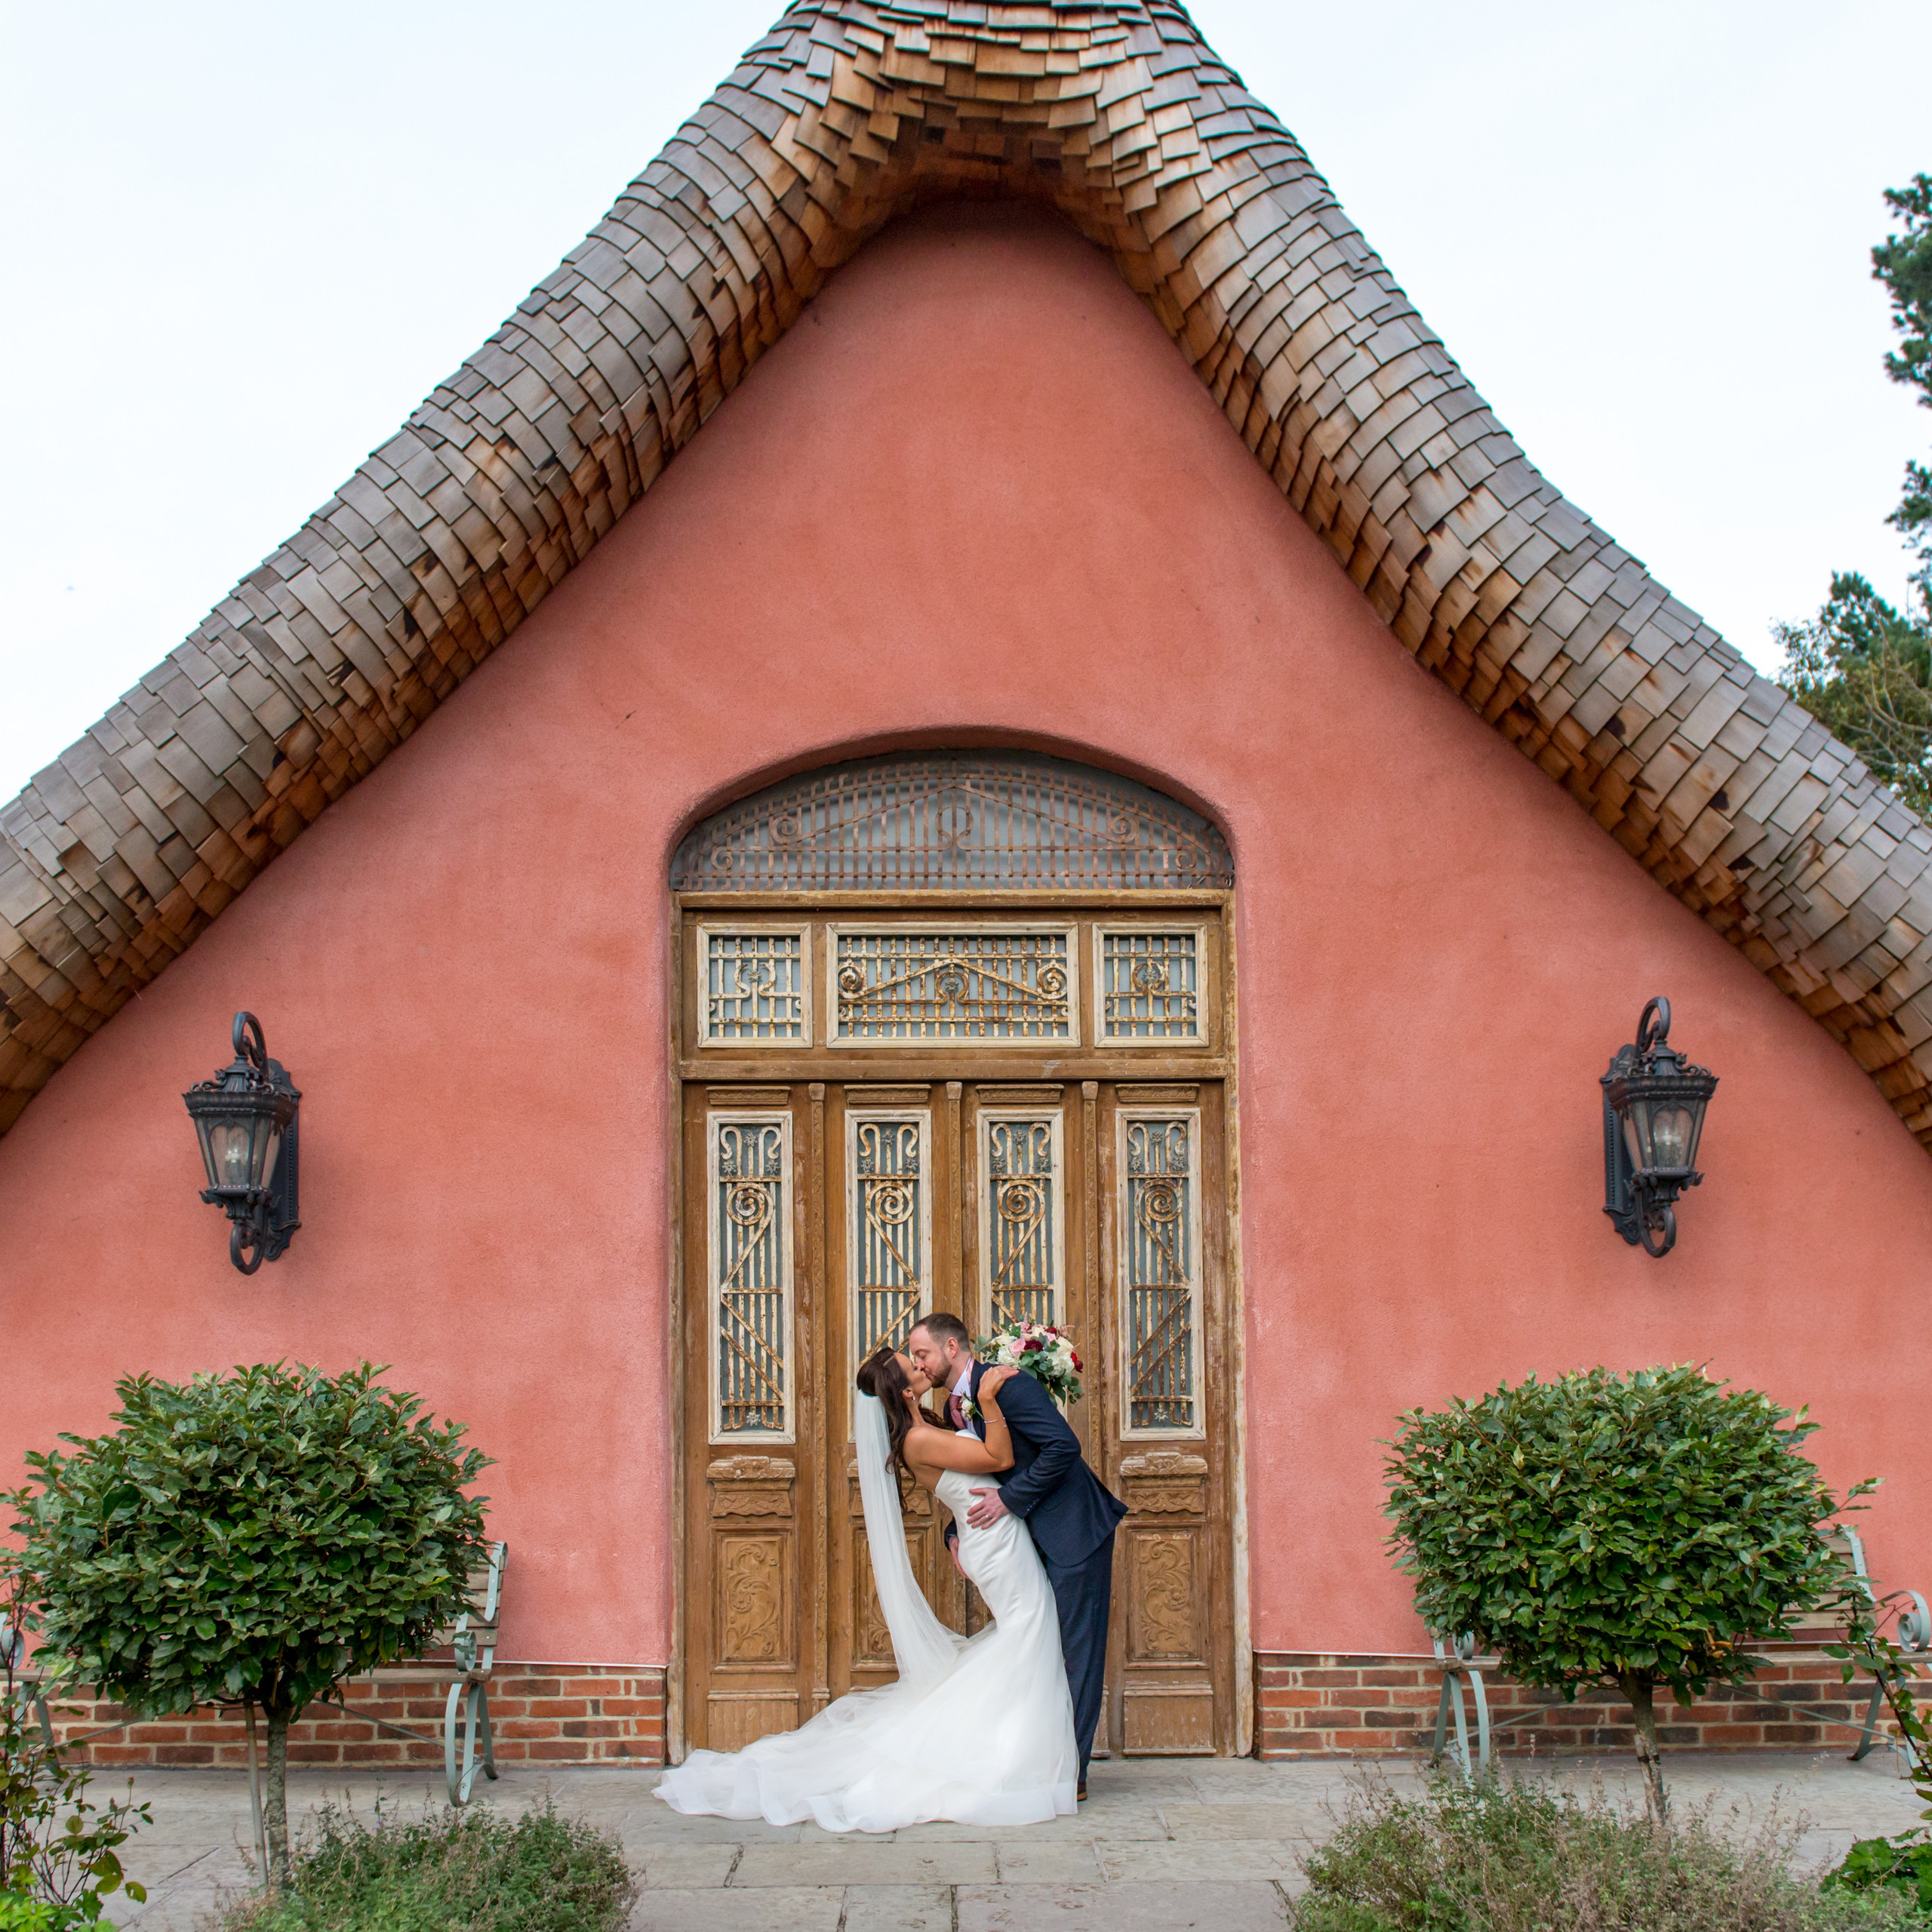 Photograph of bride and groom's kiss on wedding day at Le Petit Chateau in Otterburn, Northumberland